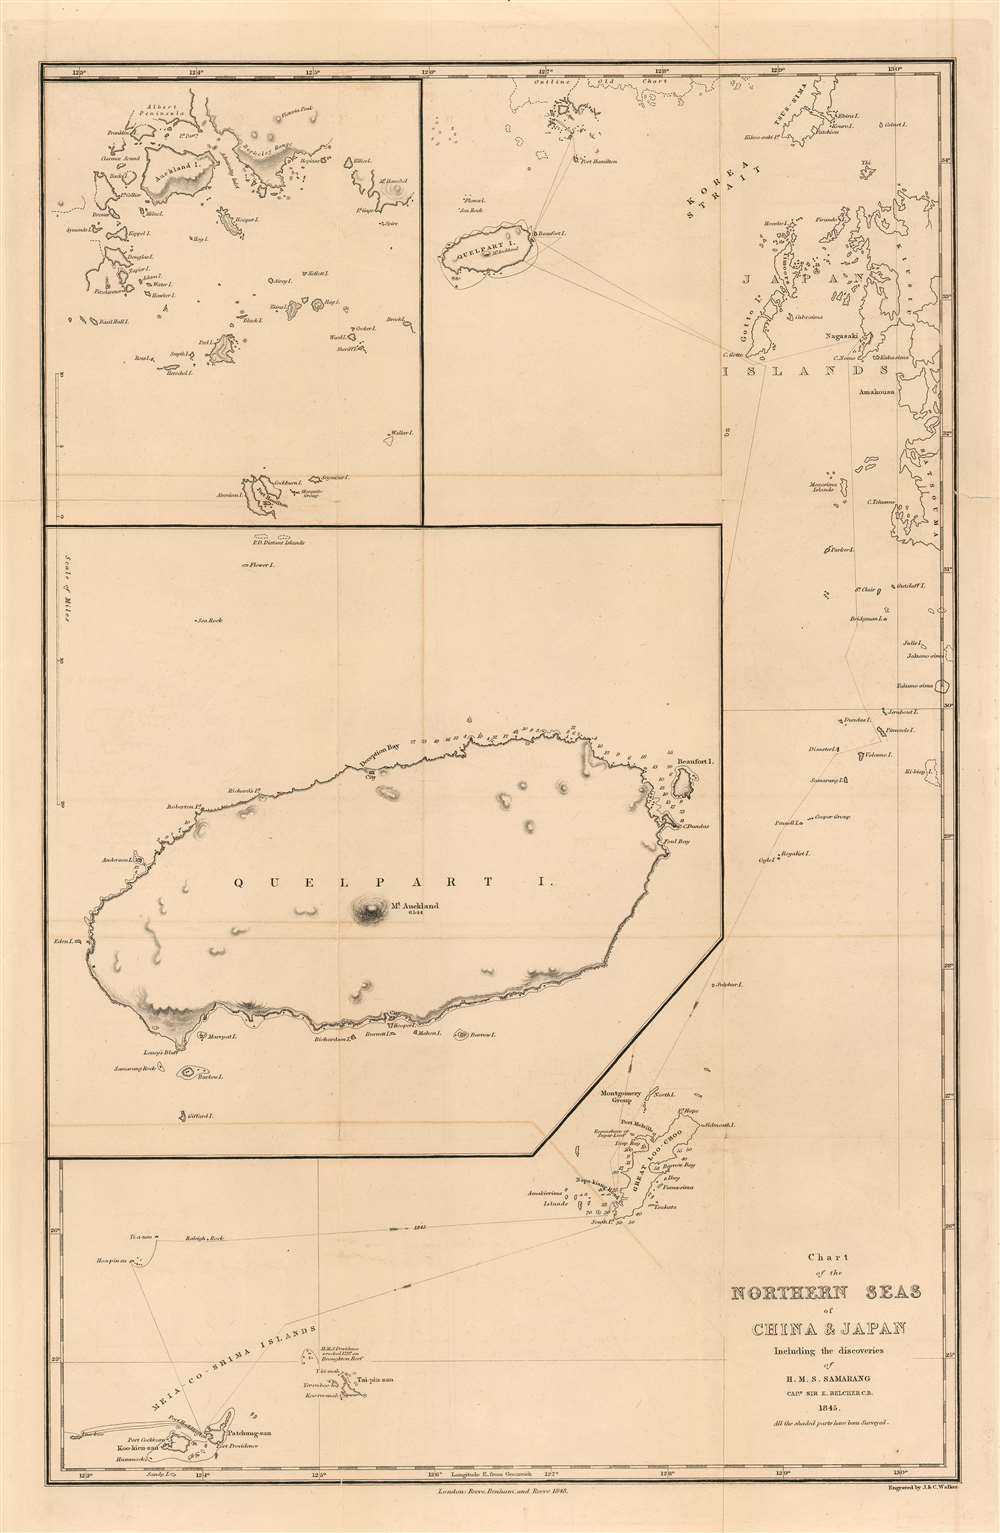 Chart of the Northern Seas of China and Japan Including the Discoveries of H. M. S. Samarang Captn, Sir E, Belcher C.B. 1845. All the shaded parts have been Surveyed.